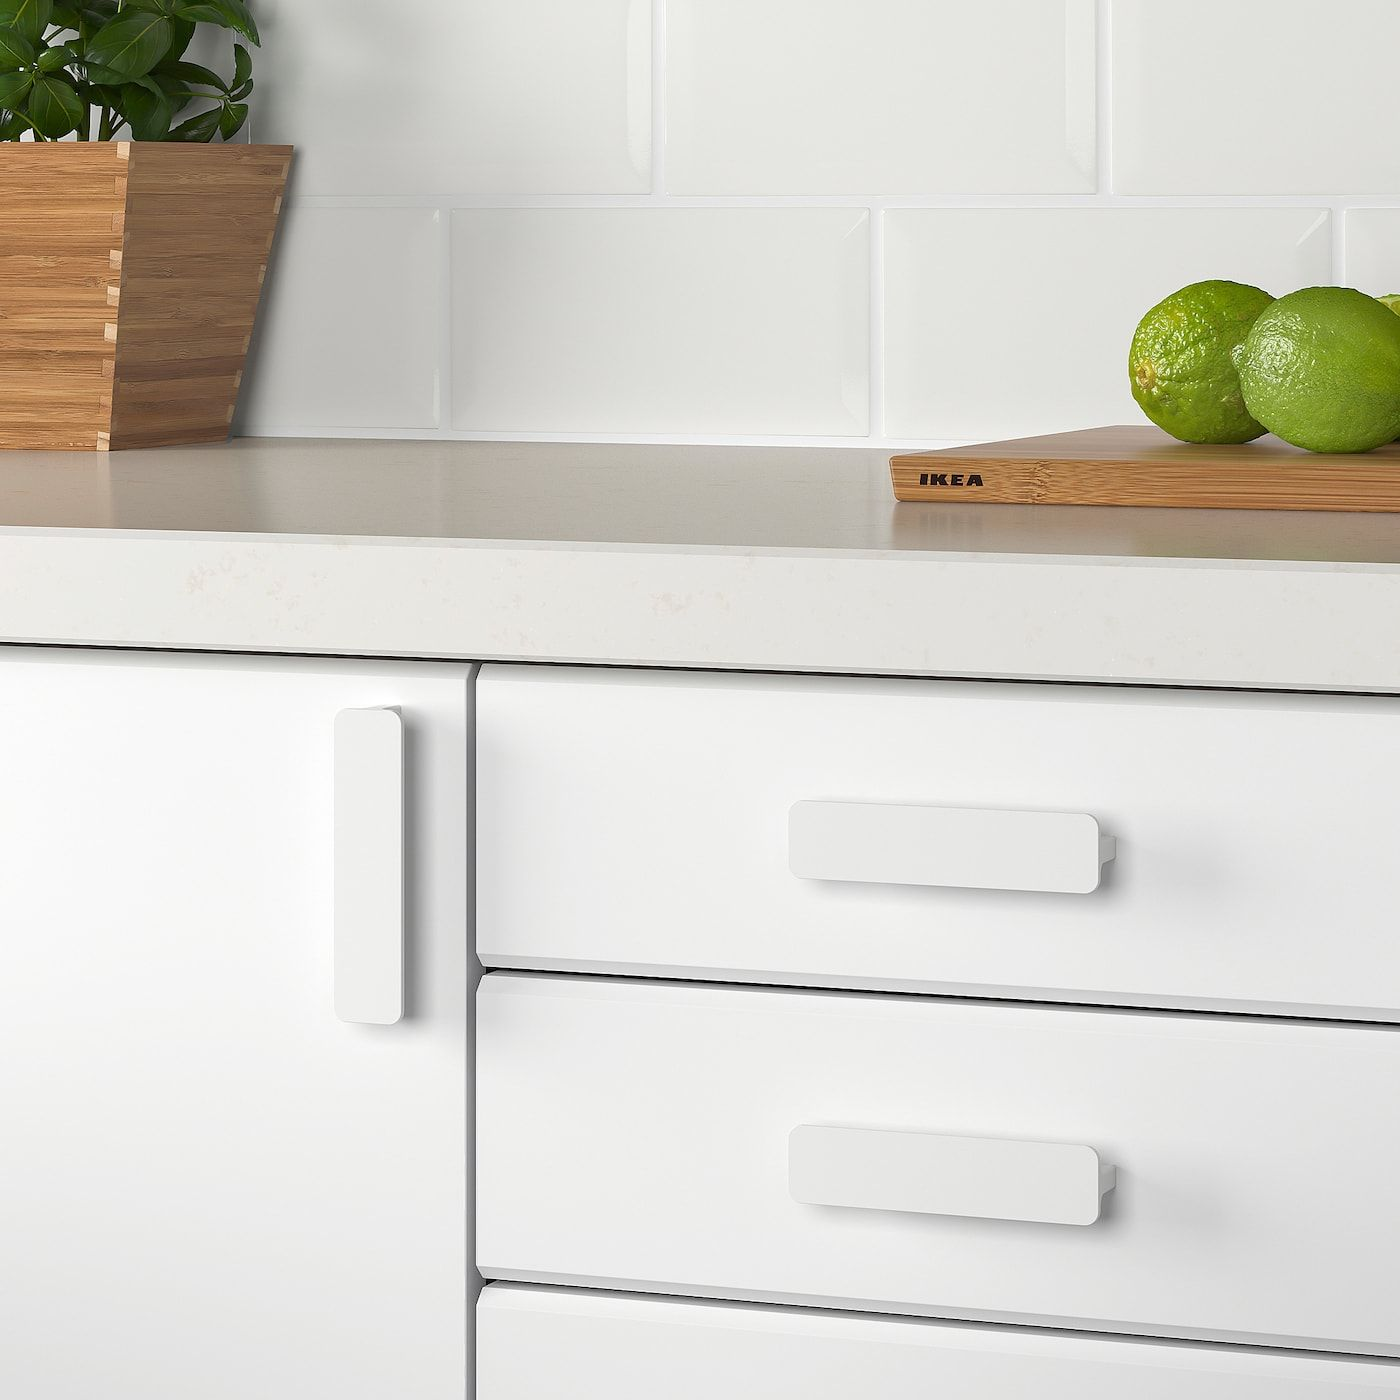 HACKÅS Handle white IKEA in 2020 Kitchen cupboard